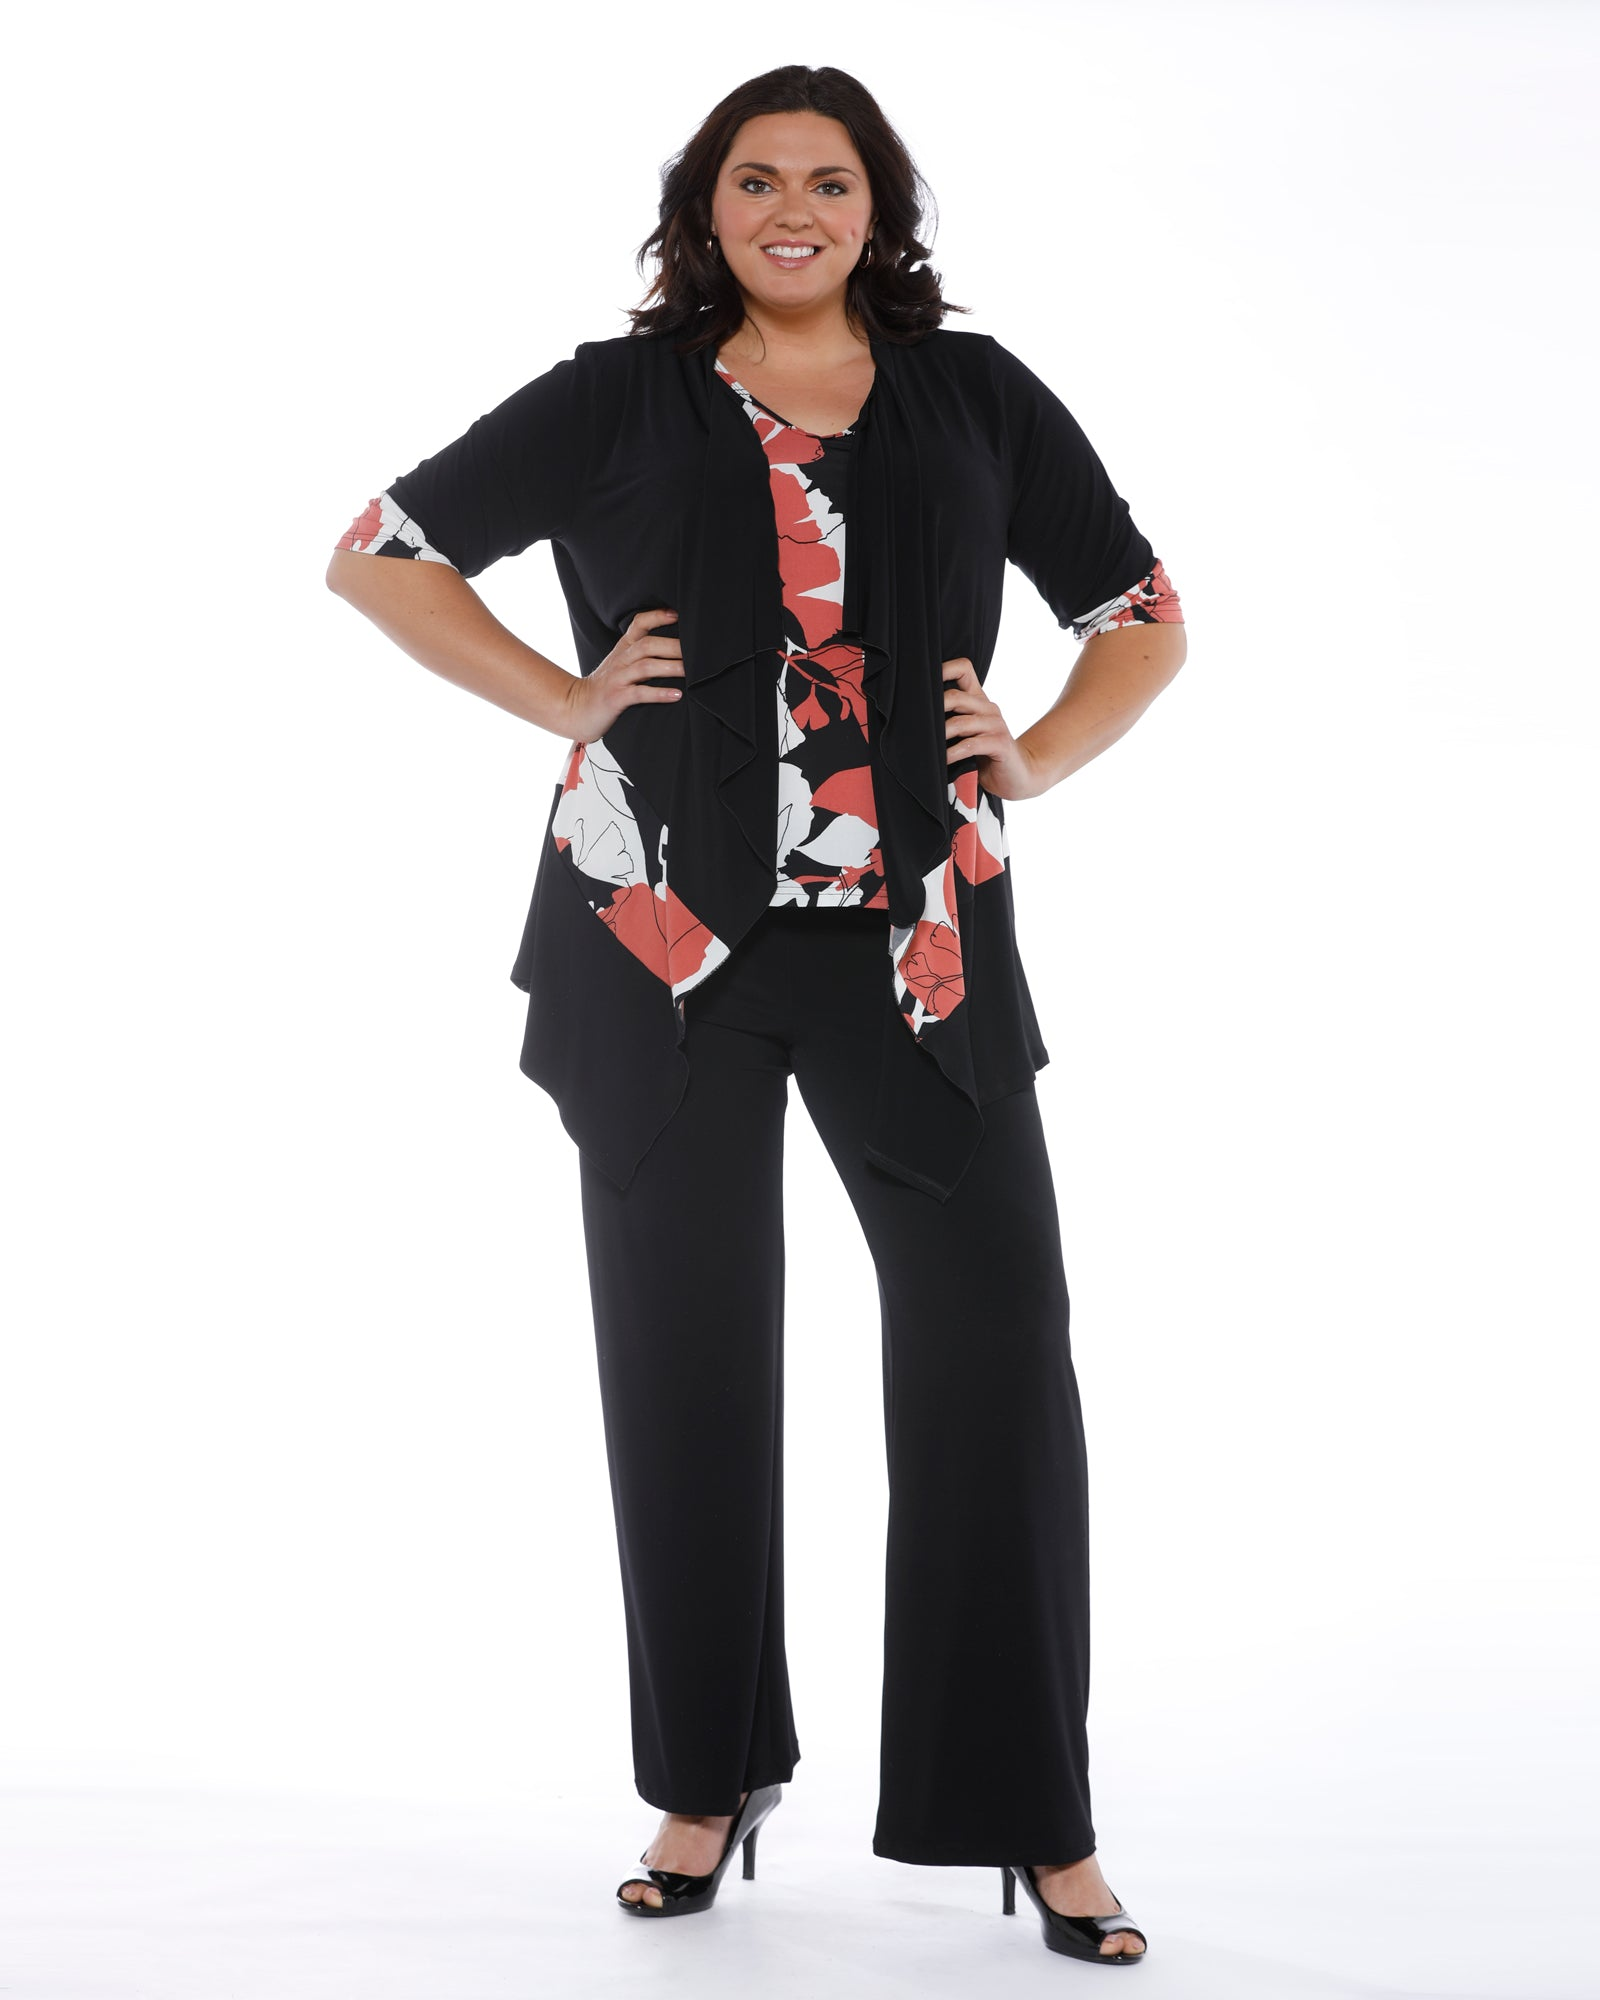 517bdc25fcf Plus Size Clothing sizes 12-26. Free AU Delivery Over  100